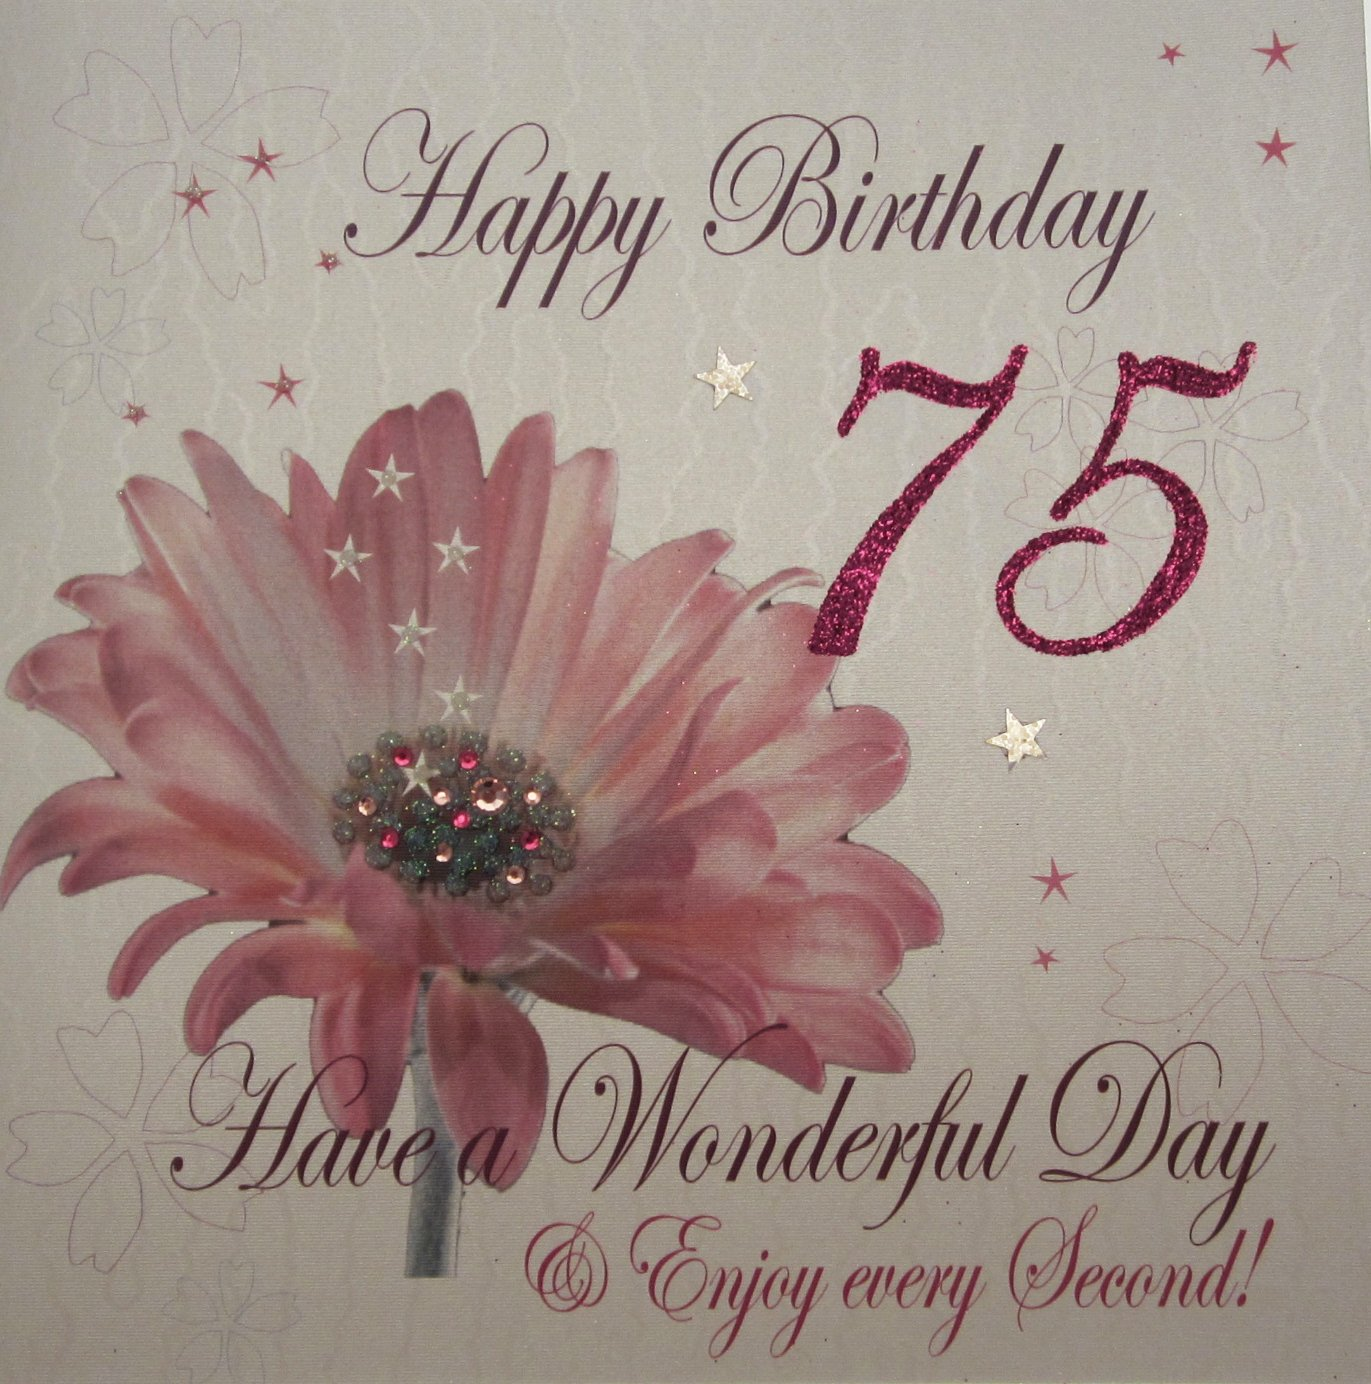 white cotton cards 1Piece Happy 75th Birthday ExtraLarge – 75th Birthday Card